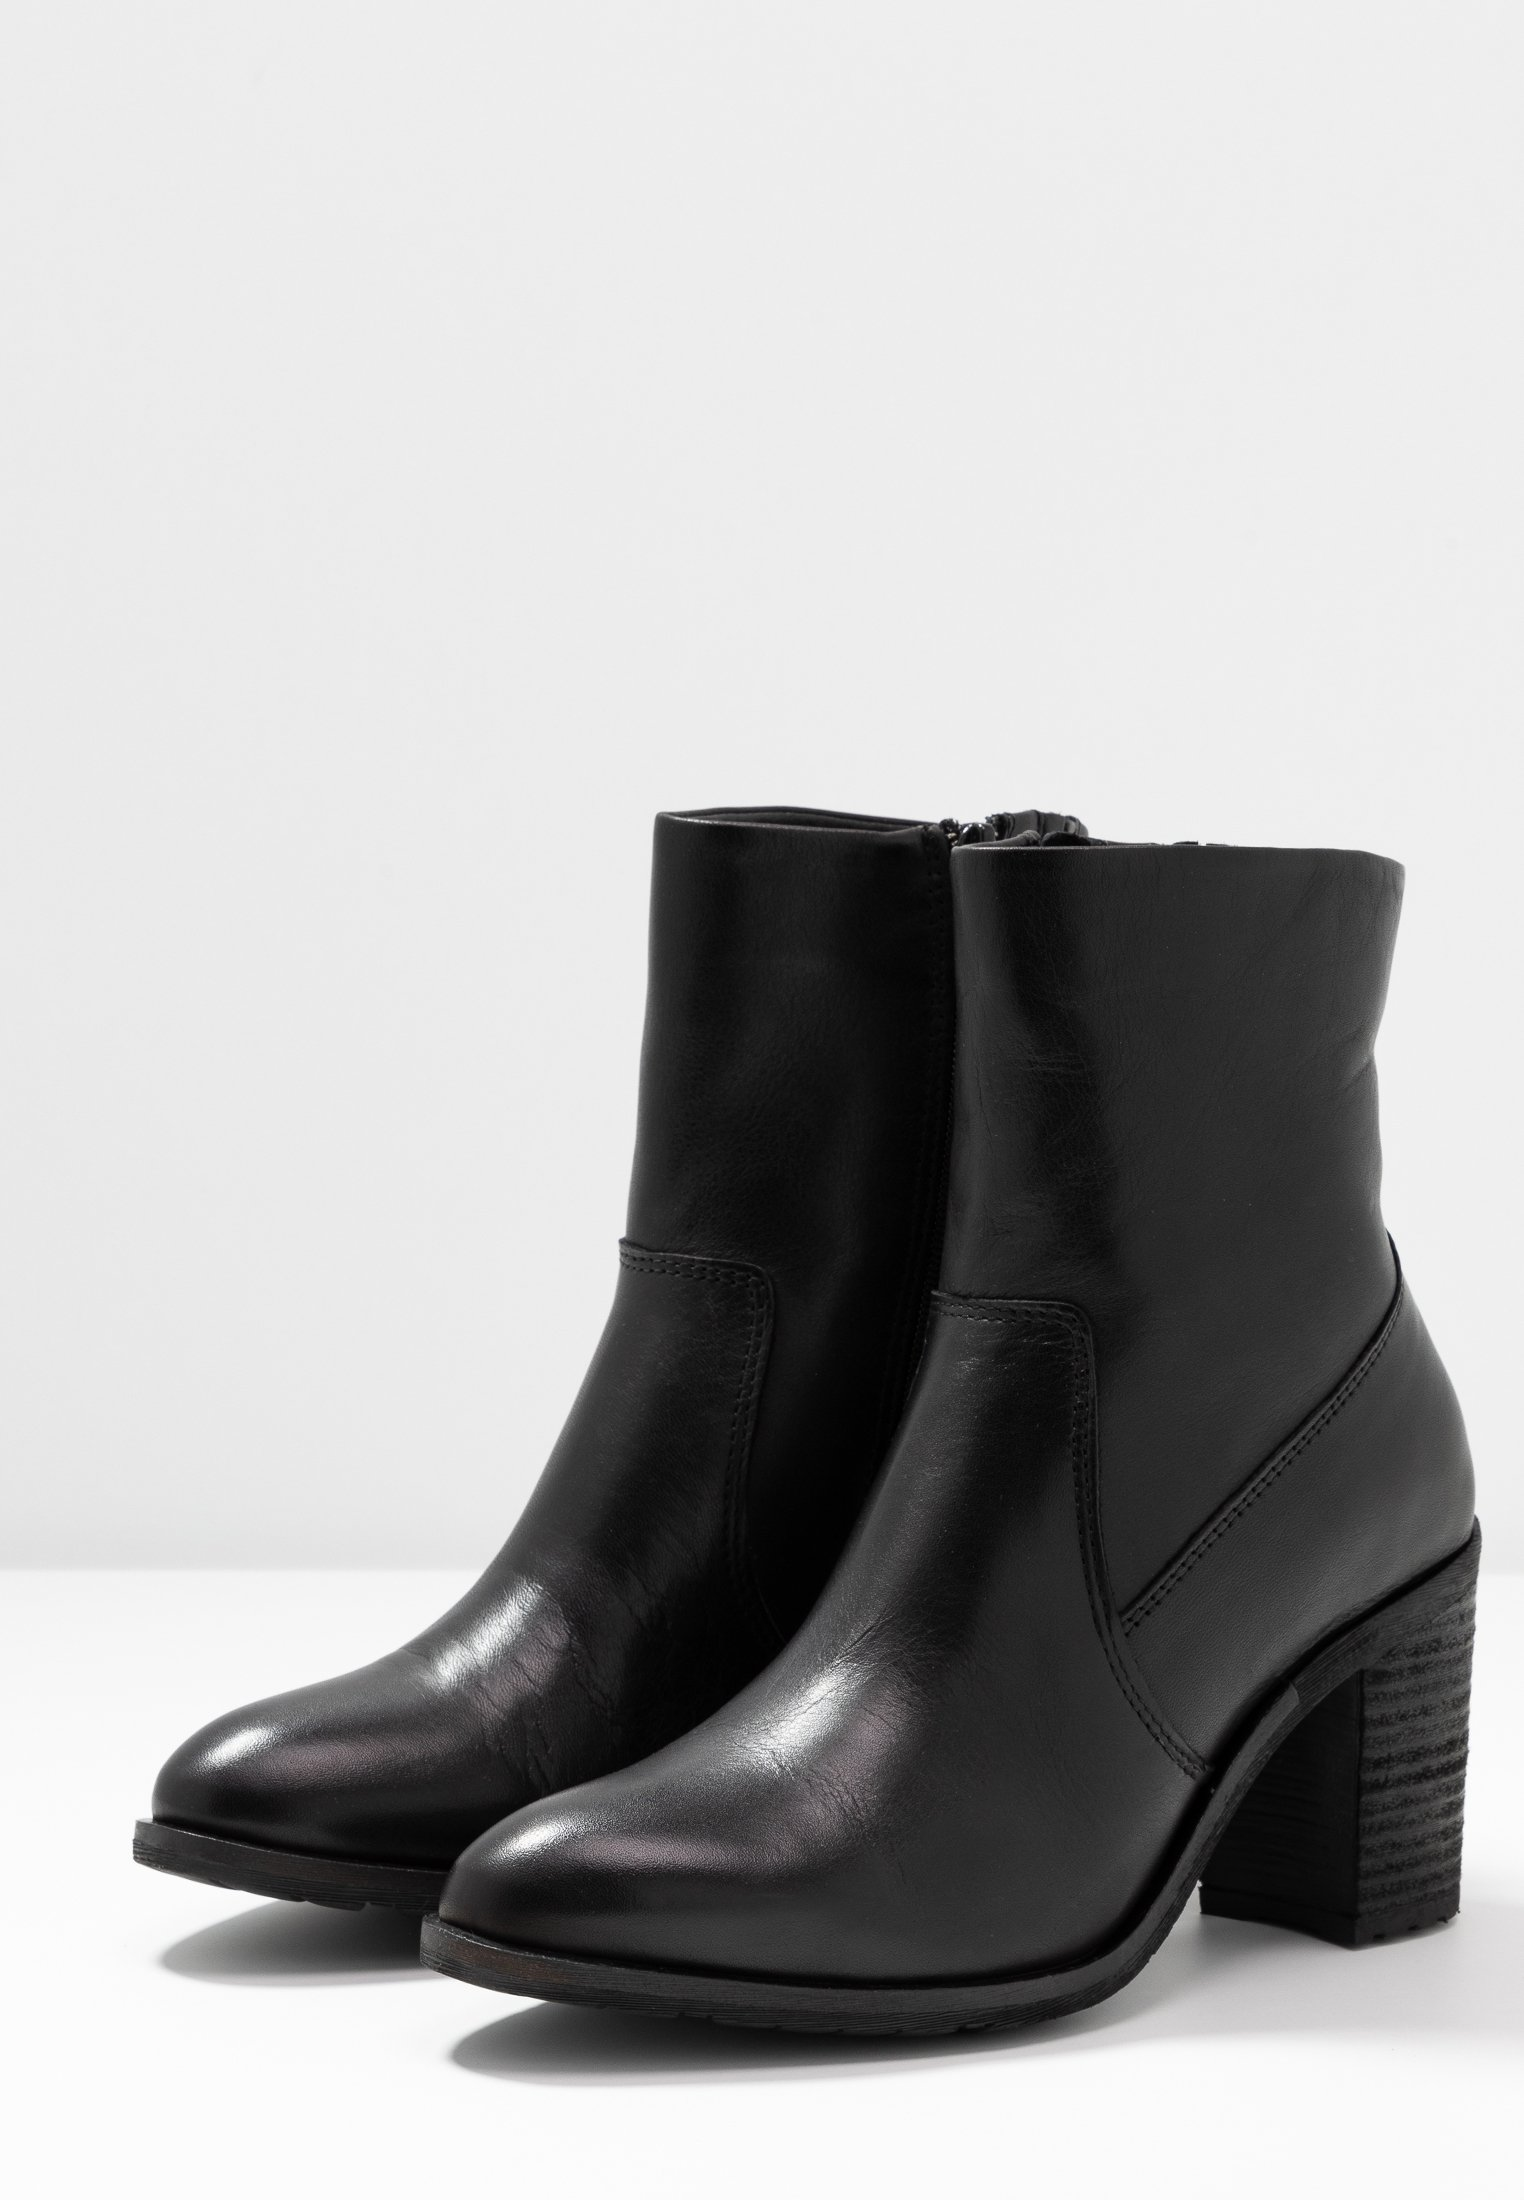 BIACOFIA LEATHER BOOT Ankelboots black